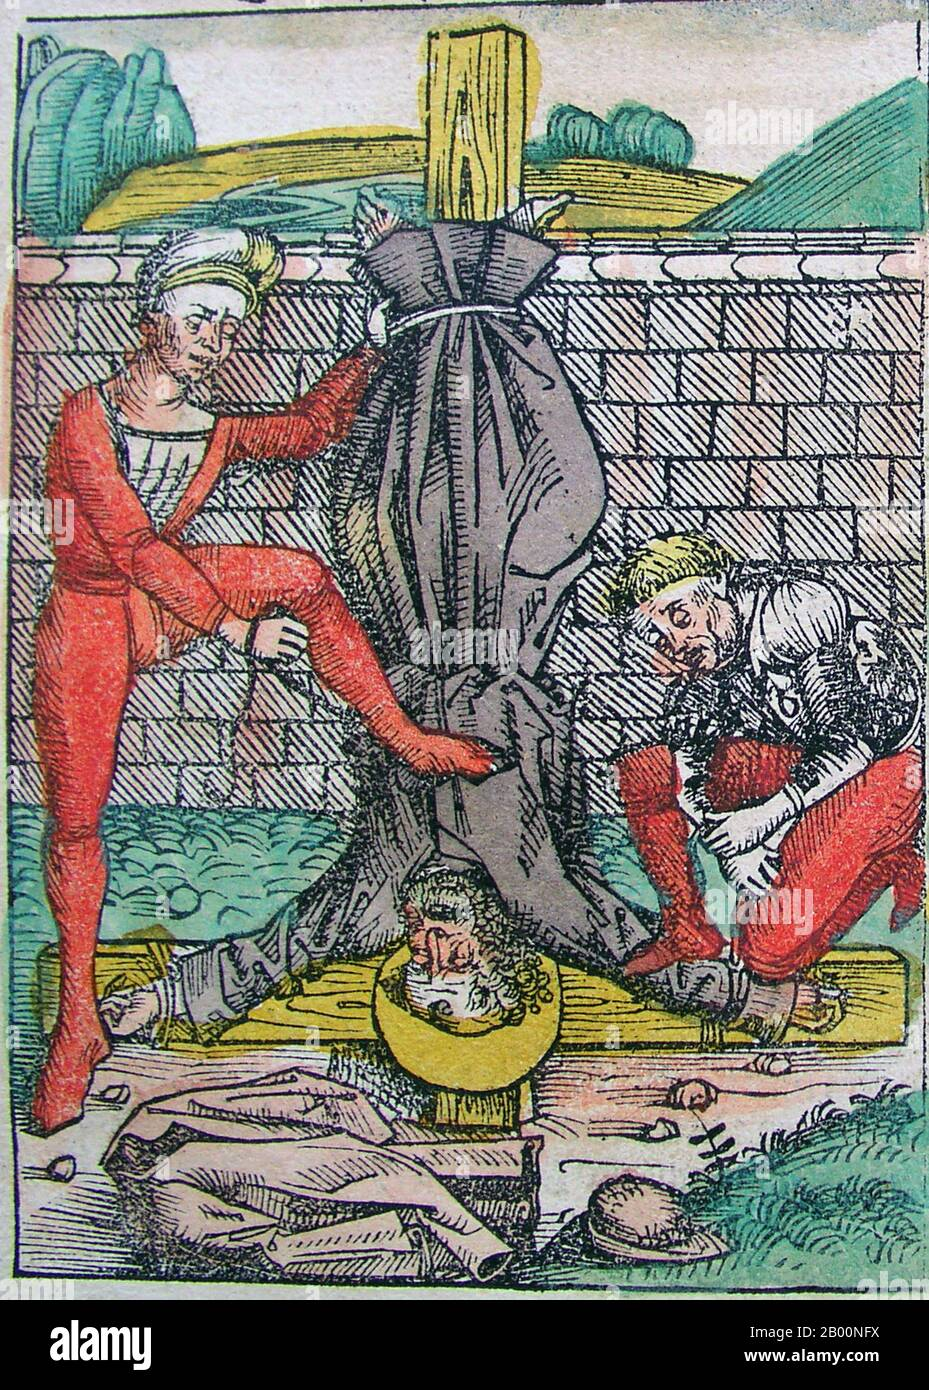 Germany: 'Crucifixion of Peter the Apostle'. The Nuremberg Chronicle, by Hartmann Schedel (1440-1514), 1493.  The Nuremberg Chronicle is an illustrated world history. Its structure follows the story of human history as related in the Bible, including the histories of a number of important Western cities. Written in Latin by Hartmann Schedel, with a version in German translation by Georg Alt, it appeared in 1493. It is one of the best-documented early printed books. It is classified as an incunabulum, a book, pamphlet, or broadside that was printed (not handwritten) before the year 1501 in Euro Stock Photo